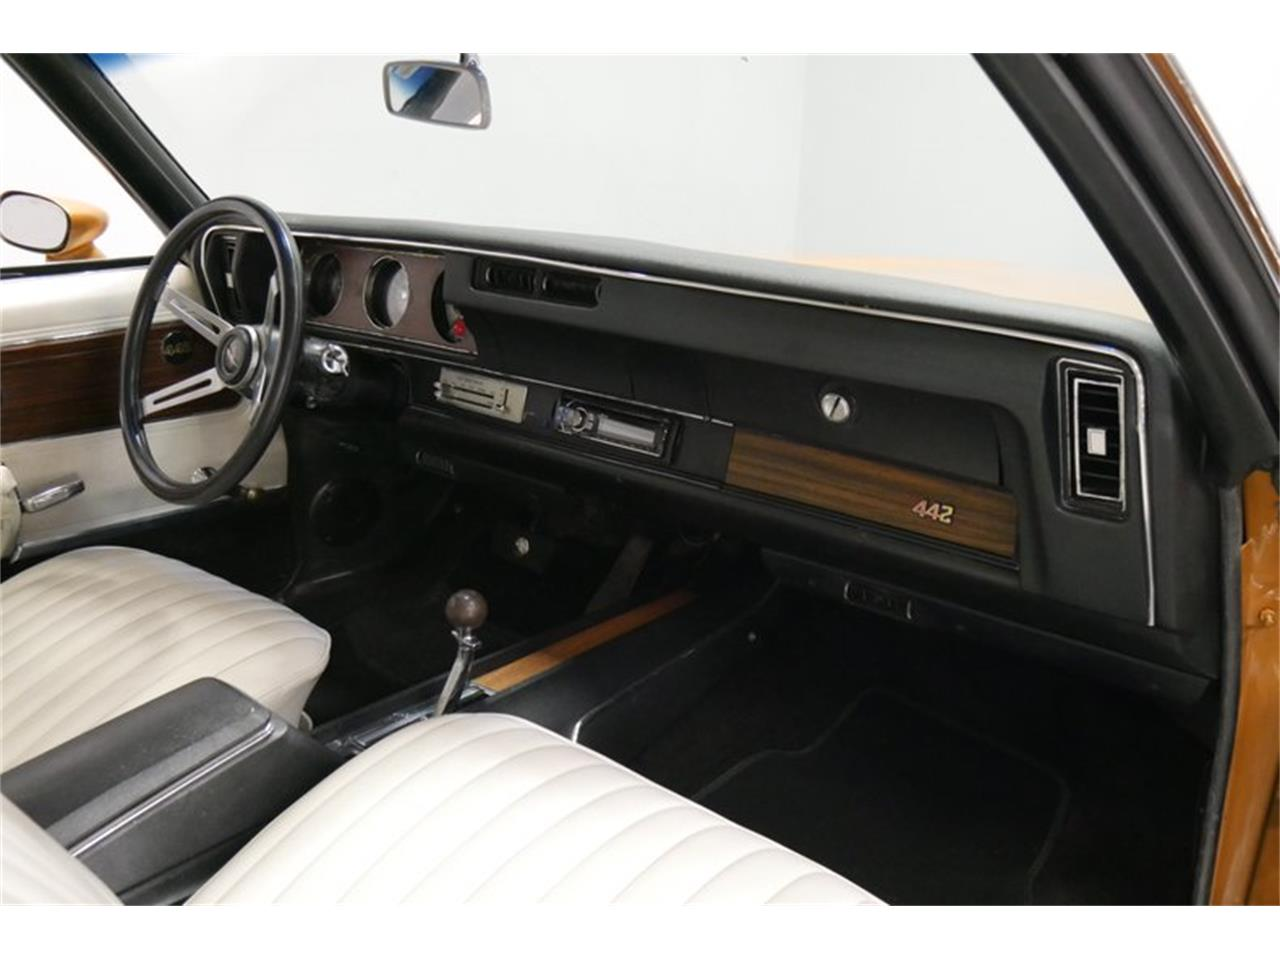 Large Picture of 1972 Cutlass located in Lavergne Tennessee - $24,995.00 Offered by Streetside Classics - Nashville - QIVH